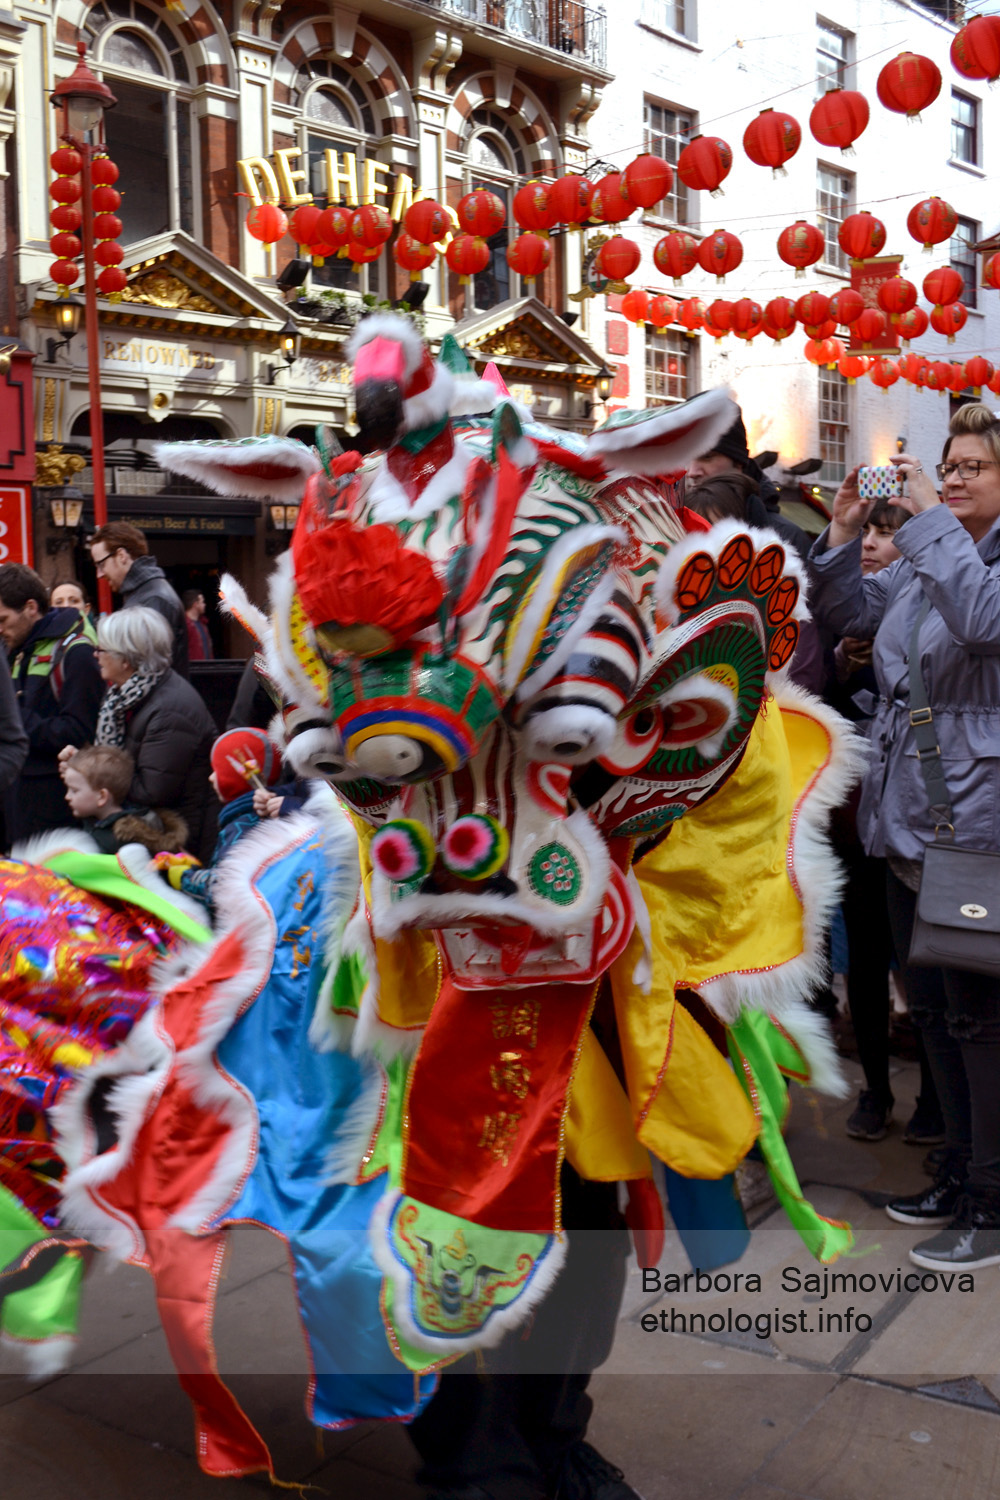 Traditional celebration of Chinese New Year in Chinatown in London.